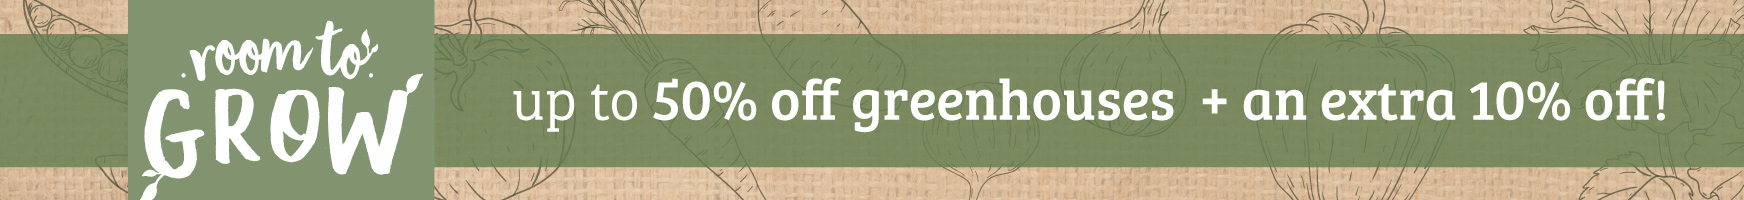 Up to 50% off greenhouses plus an extra 10% off!